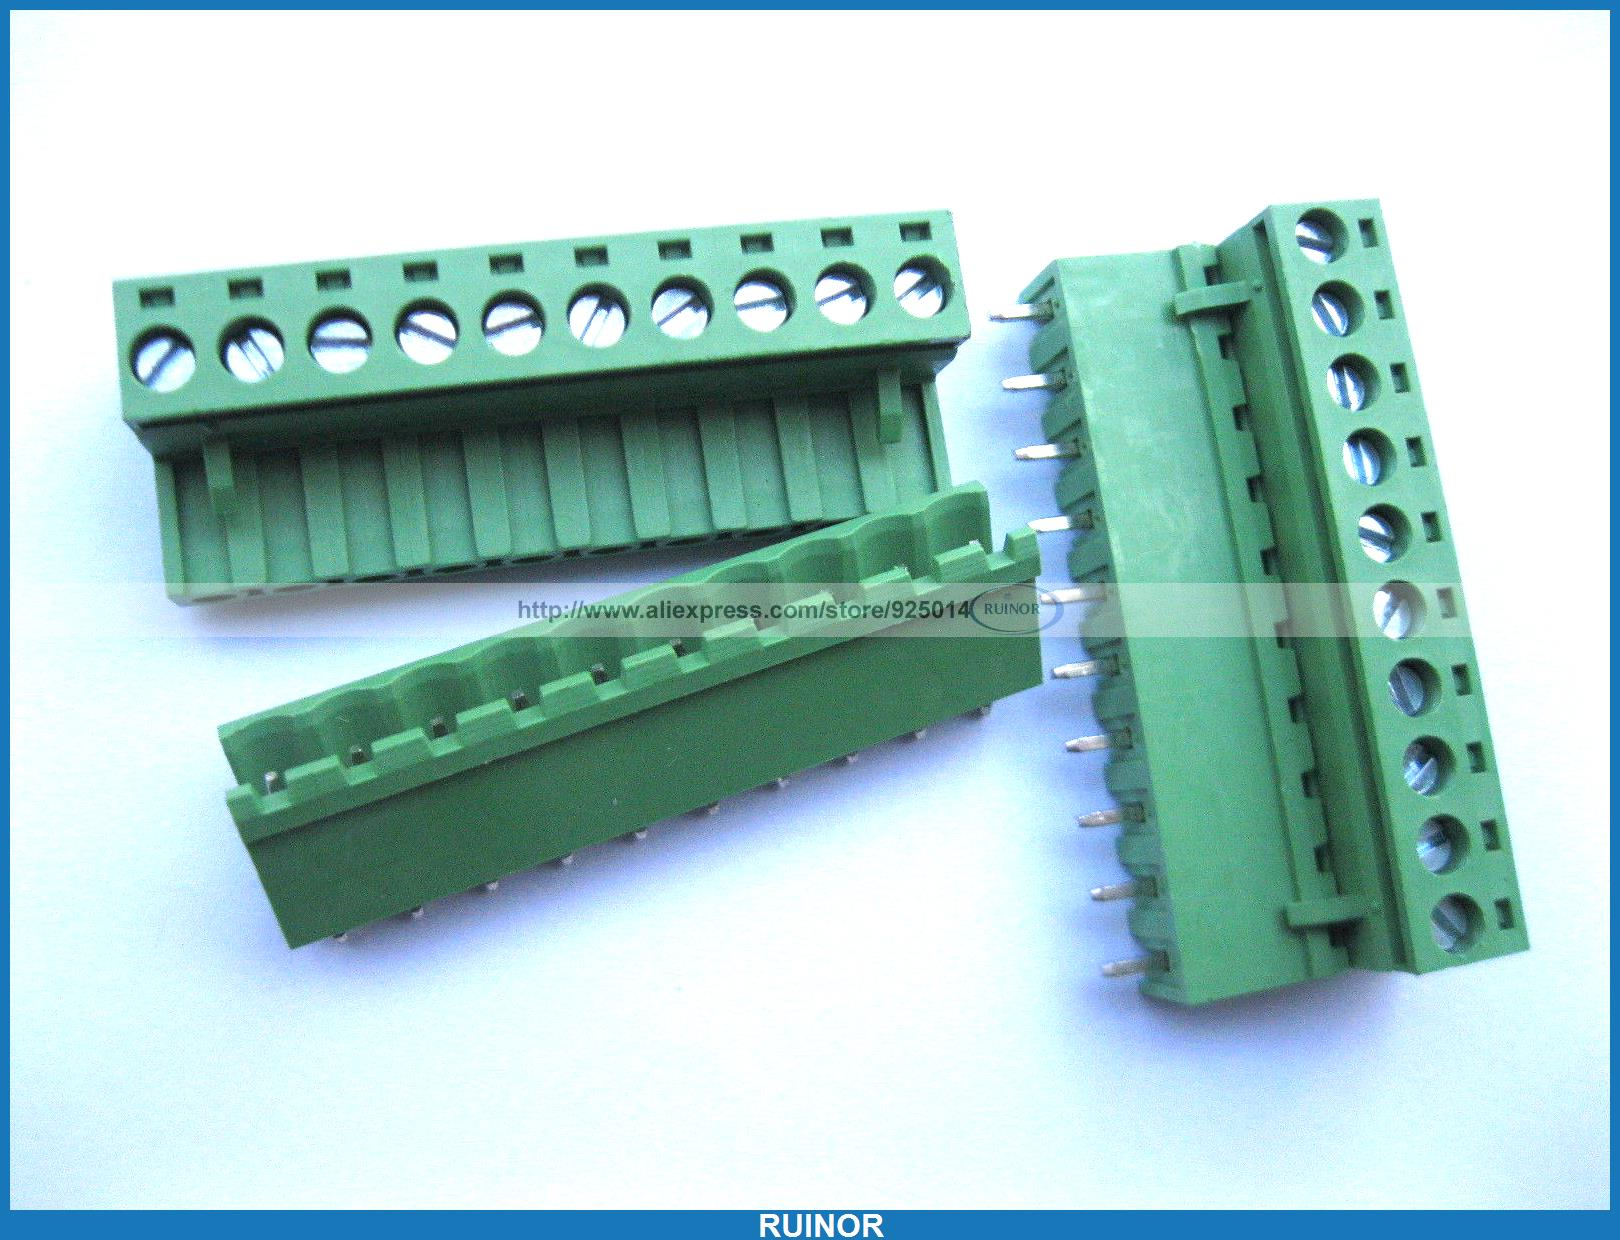 50 Pcs 5 08mm Straight 10 Pin Screw Terminal Block Connector Pluggable Green 100 pcs green 6 pin 5 08mm screw terminal block connector pluggable type